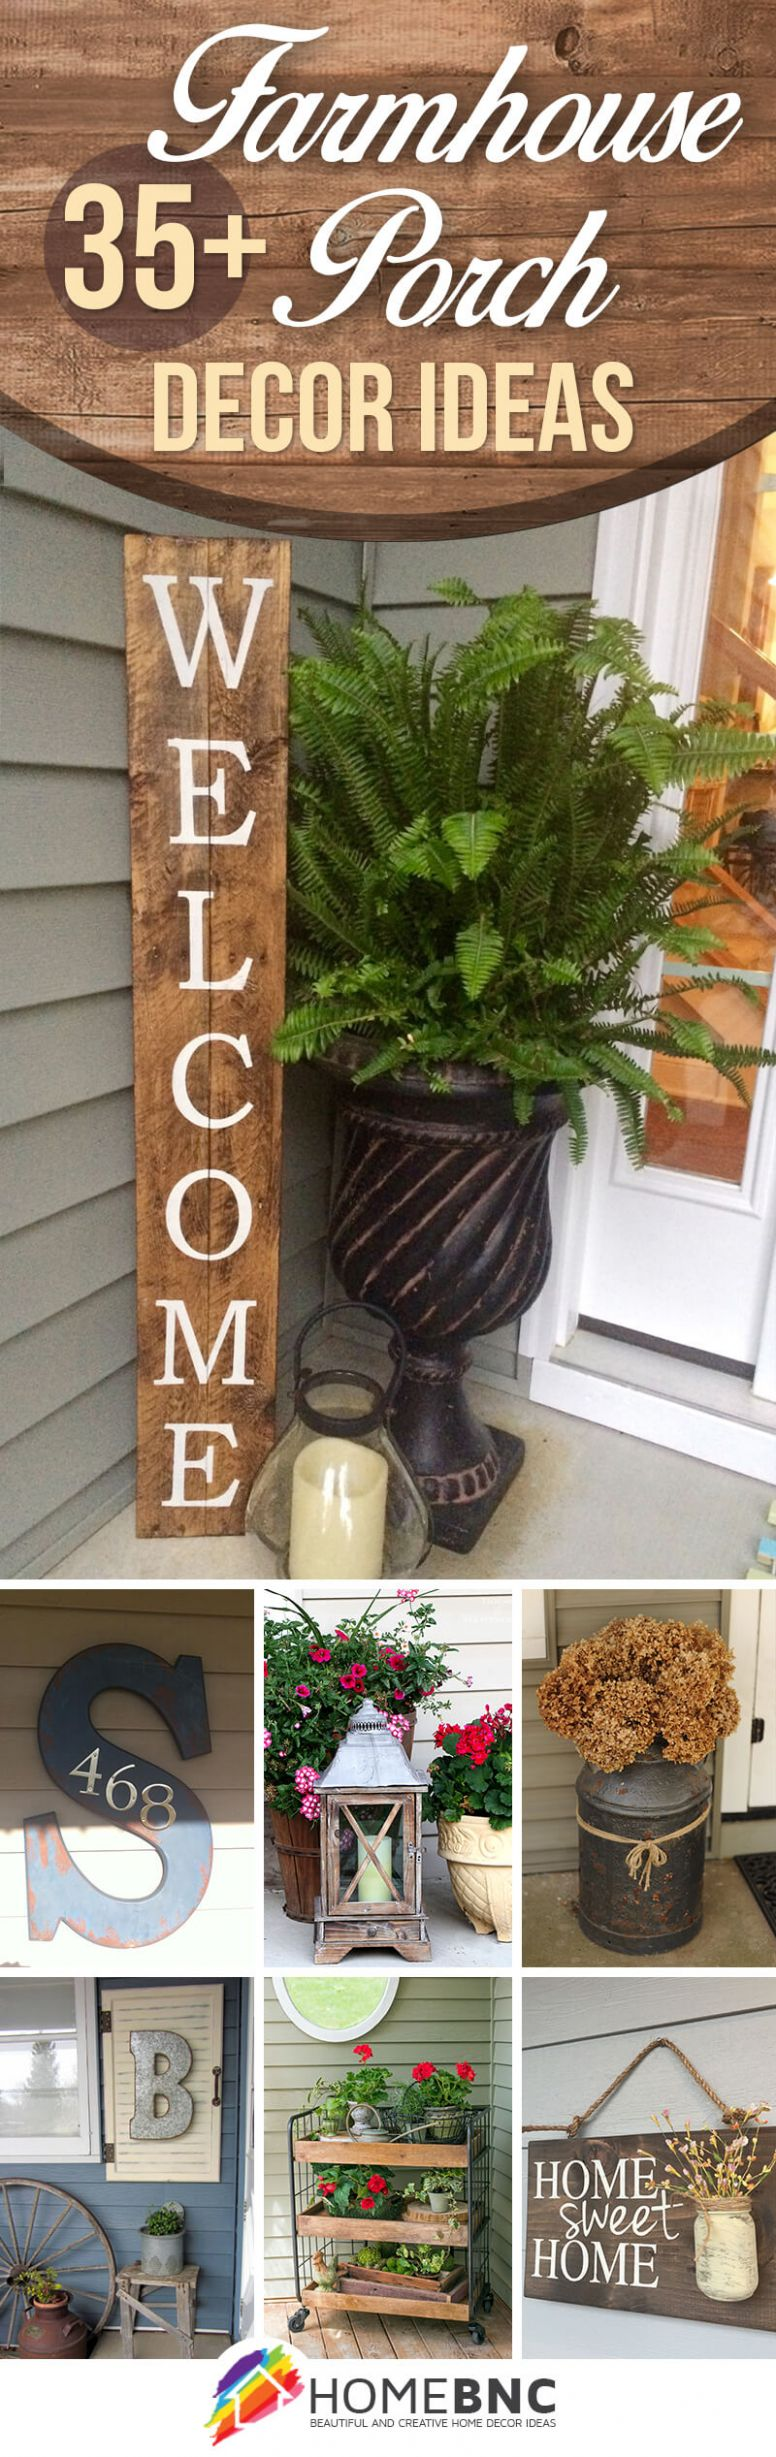 9 Best Rustic Farmhouse Porch Decor Ideas and Designs for 9 - front porch country decor